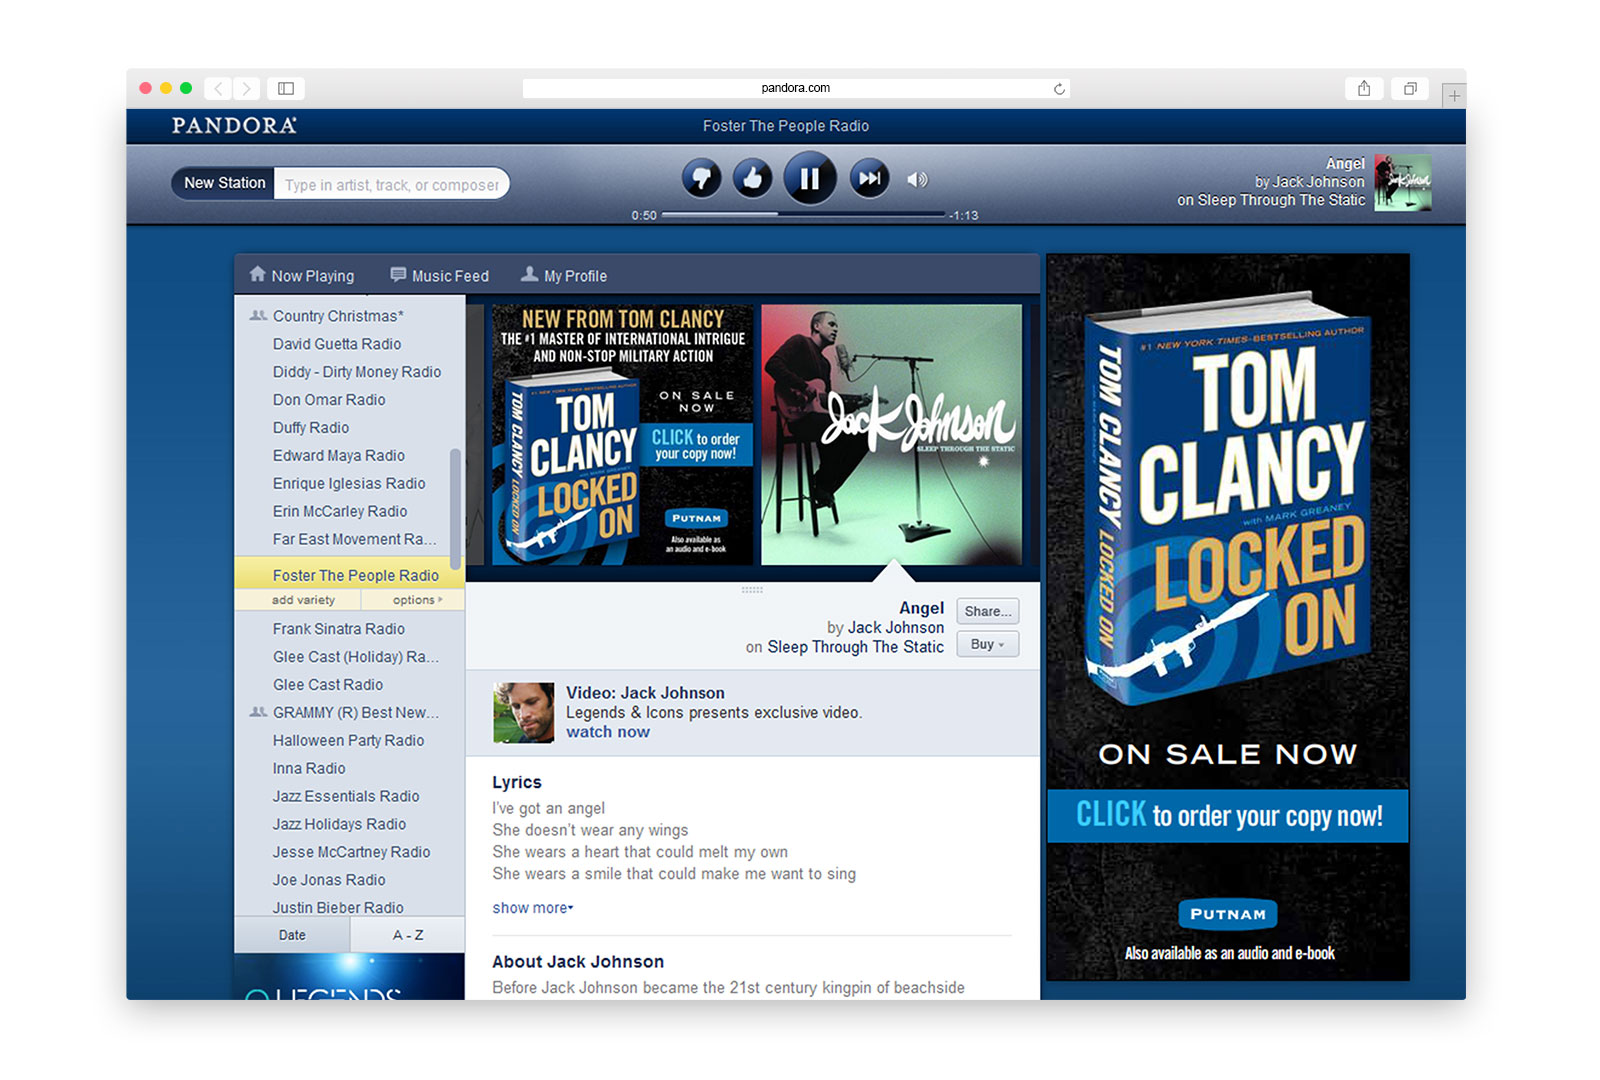 Tom Clancy - Locked On - Pandora